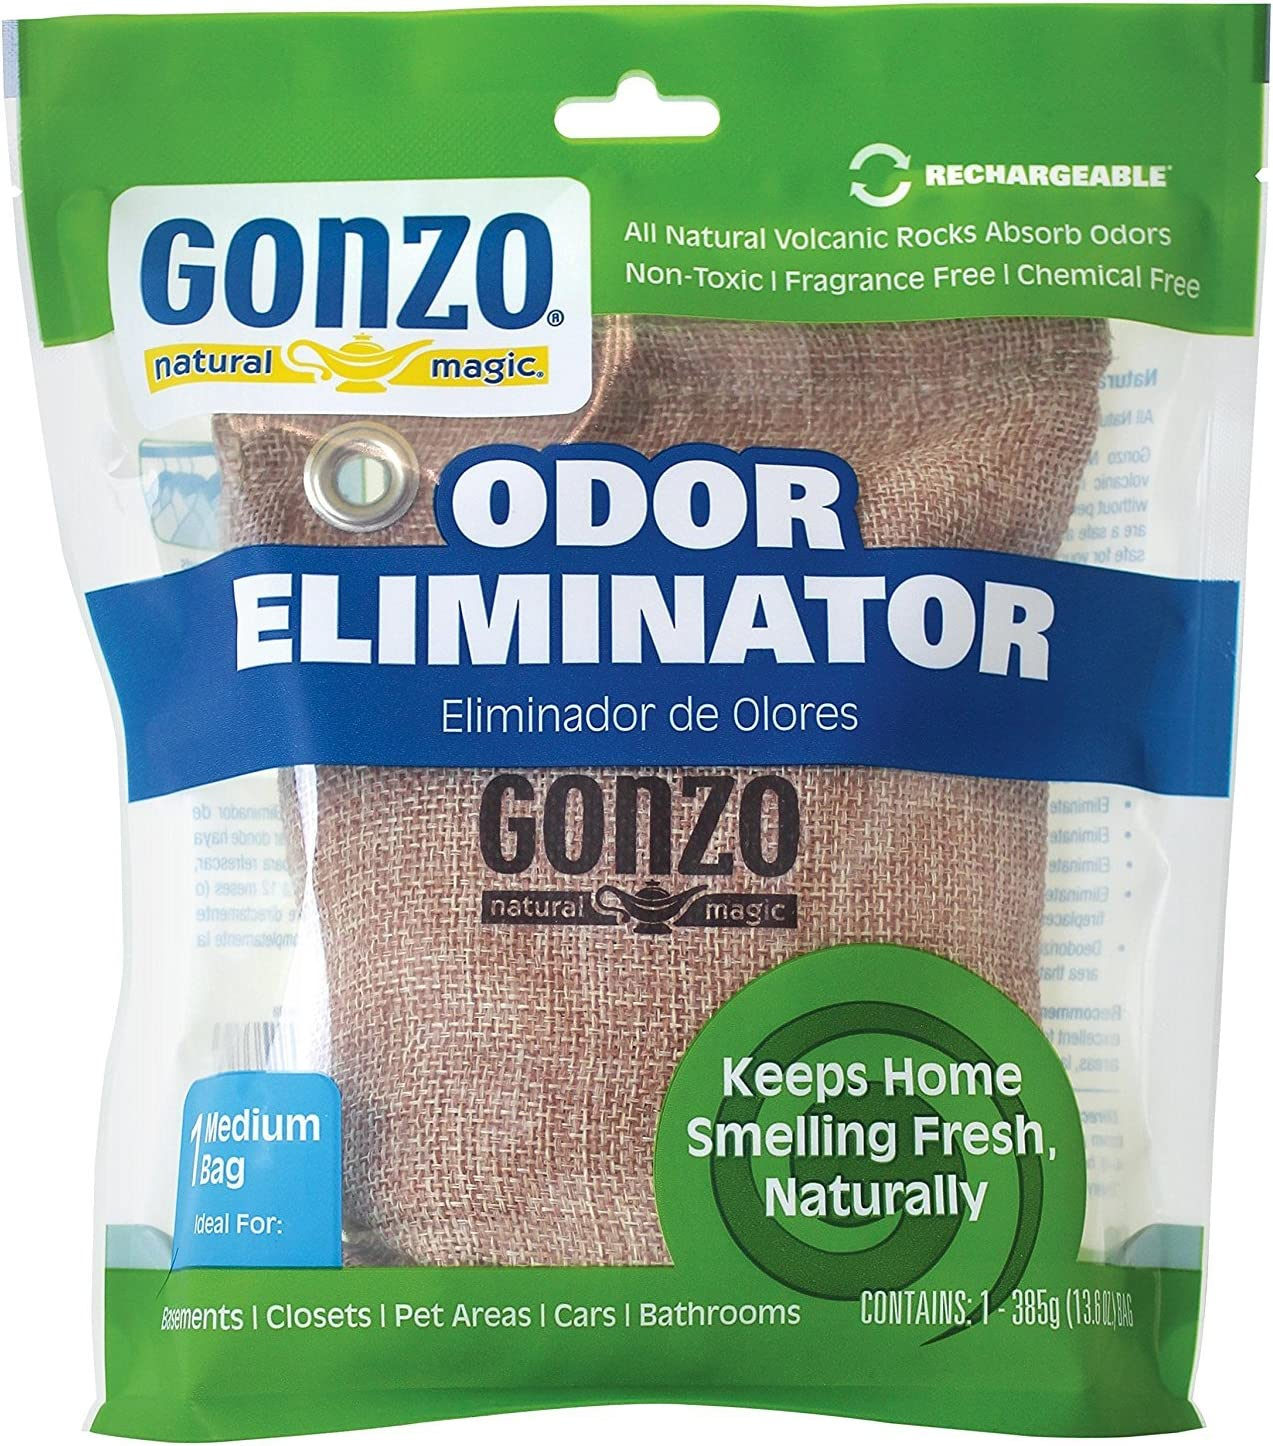 Gonzo Reusable Air Freshener - 1 Bag - Odor Eliminator For Home Basement Car Smoke Smell Gym Bag - All Natural Non-Toxic Safe Around Kids and Pets Fragrance Free Chemical Free